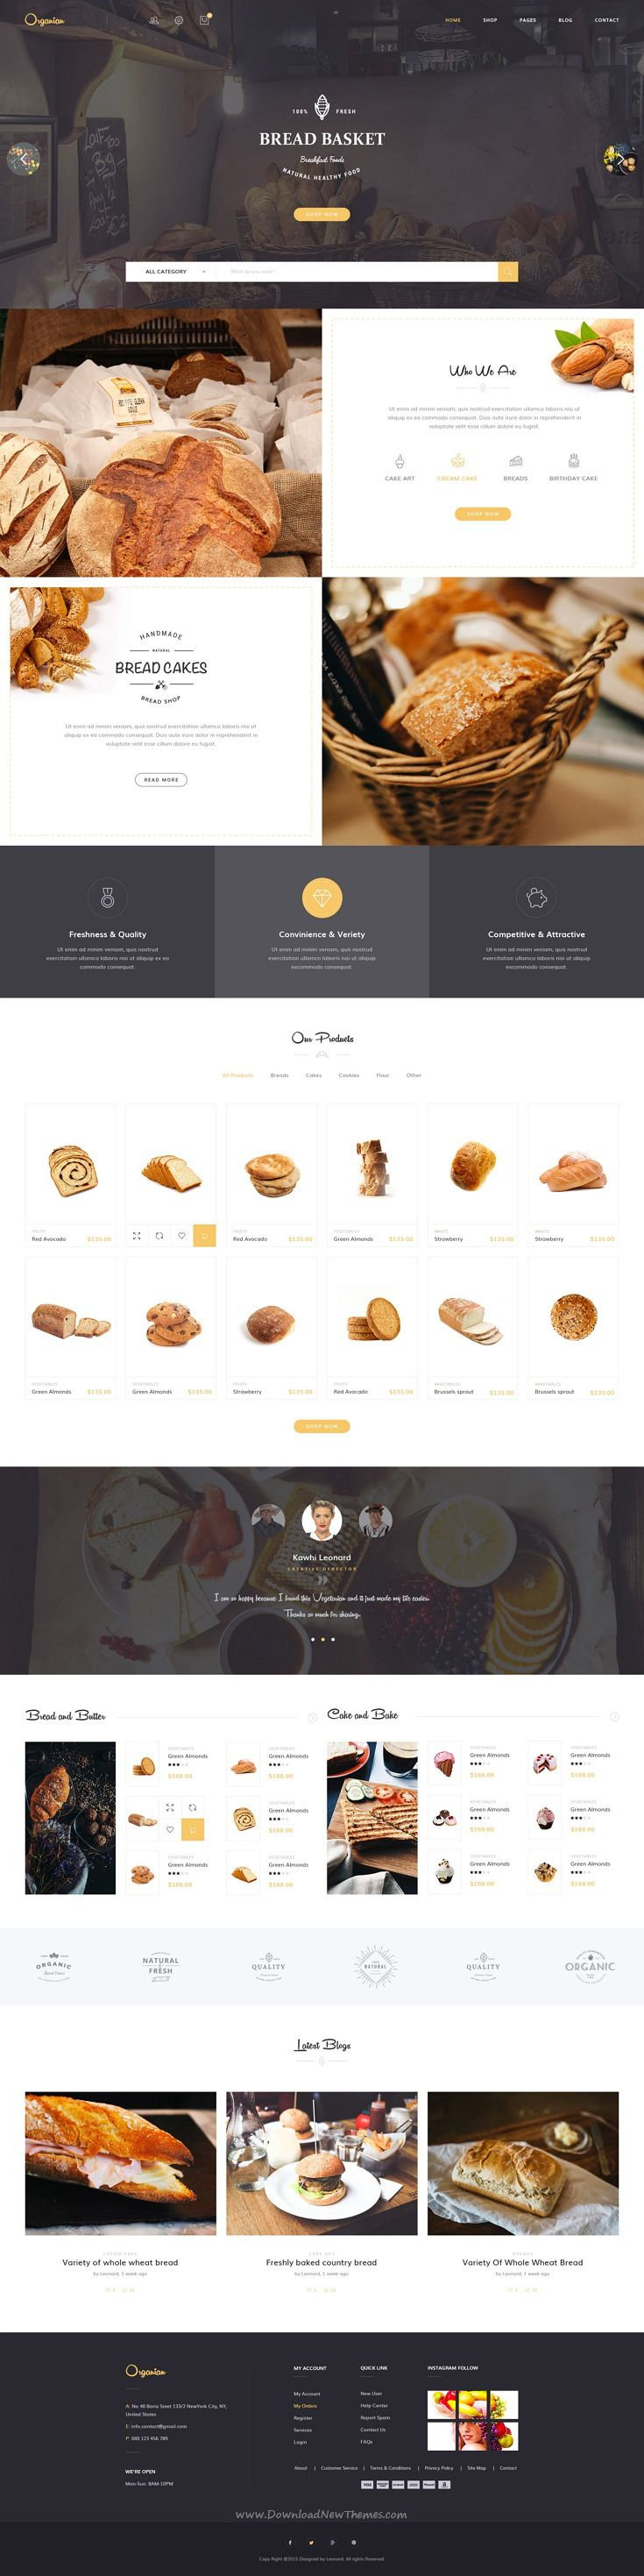 Really like the layout and color scheme of this template! The contrasting colors make the design look very crisp and modern.